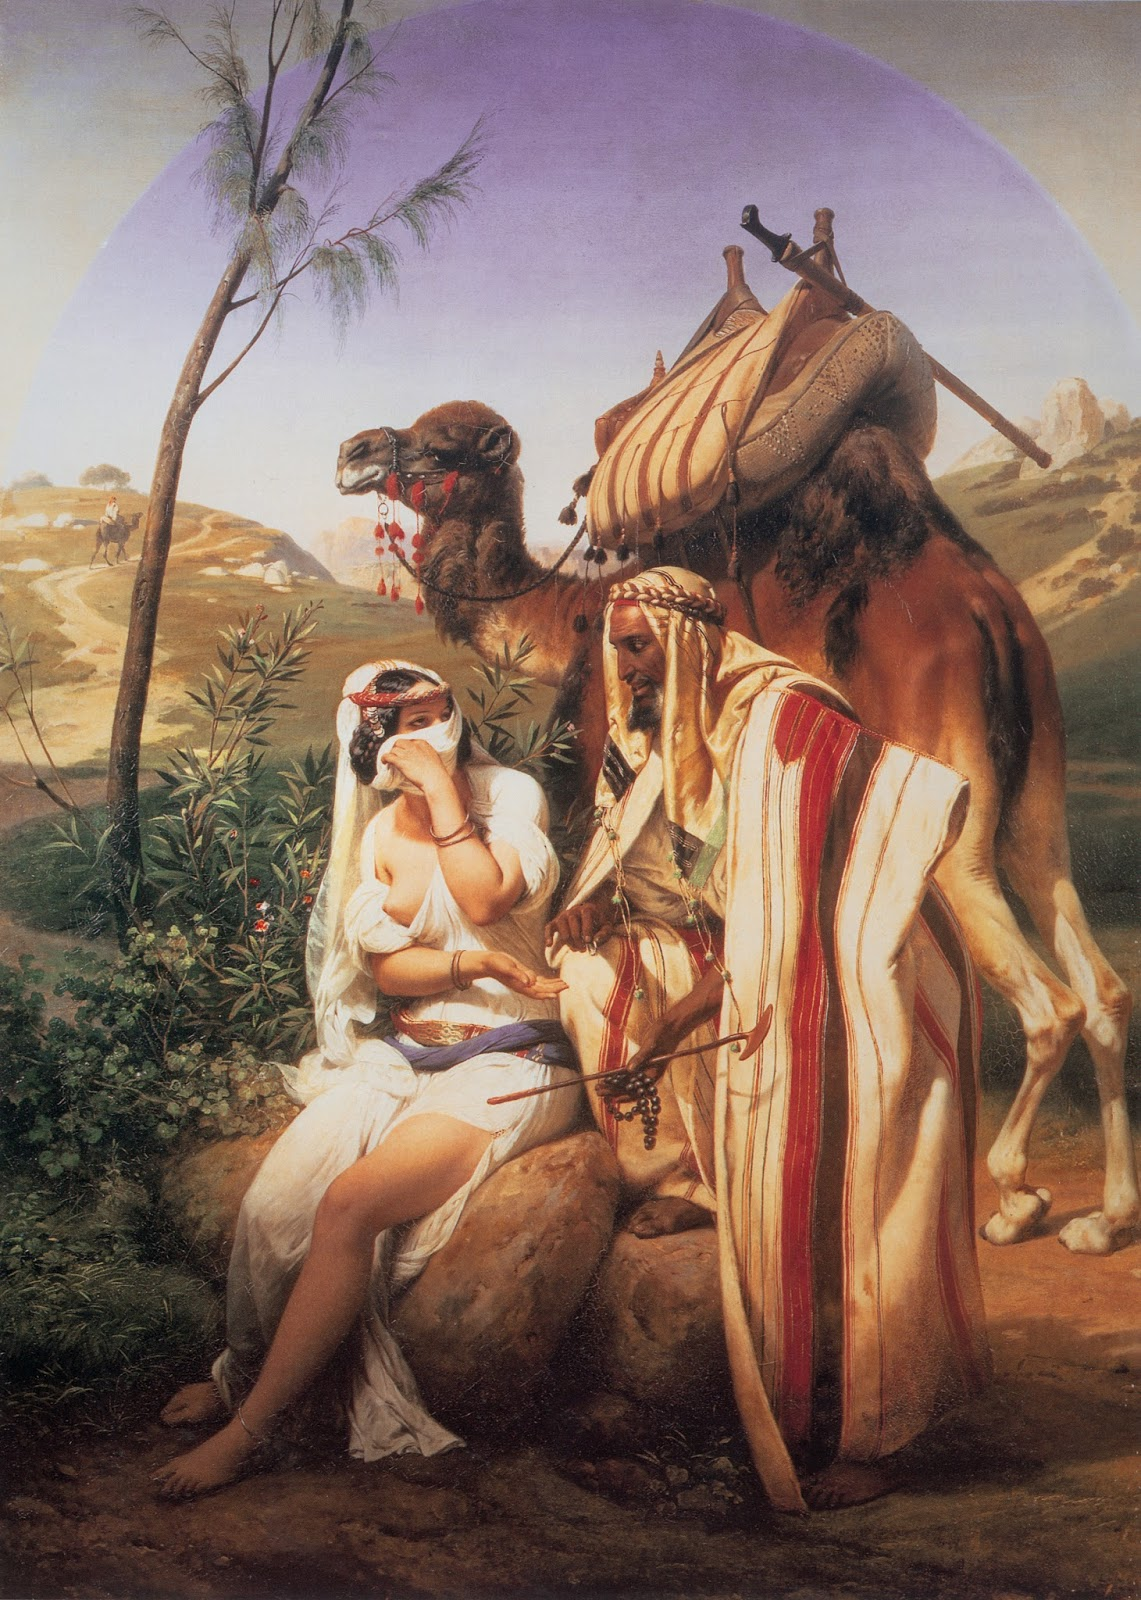 Judah and Tamar (1840)